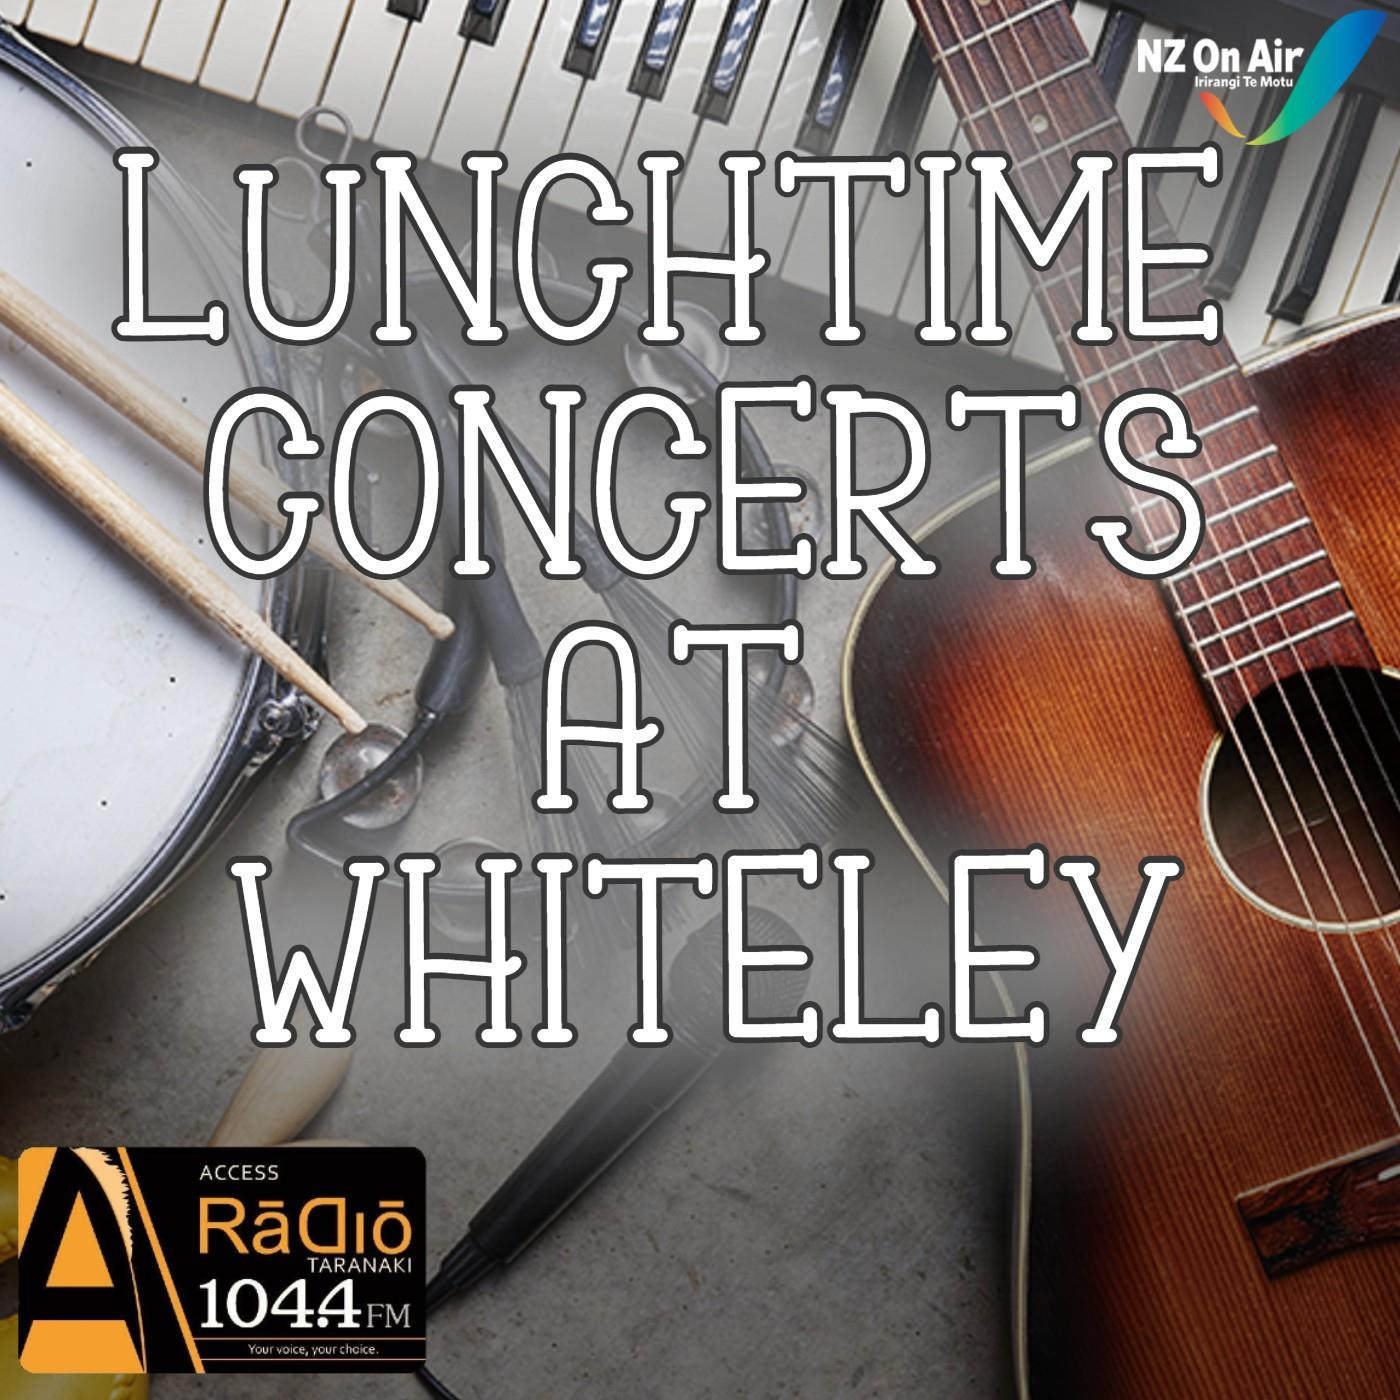 Lunchtime Concerts at Whiteley